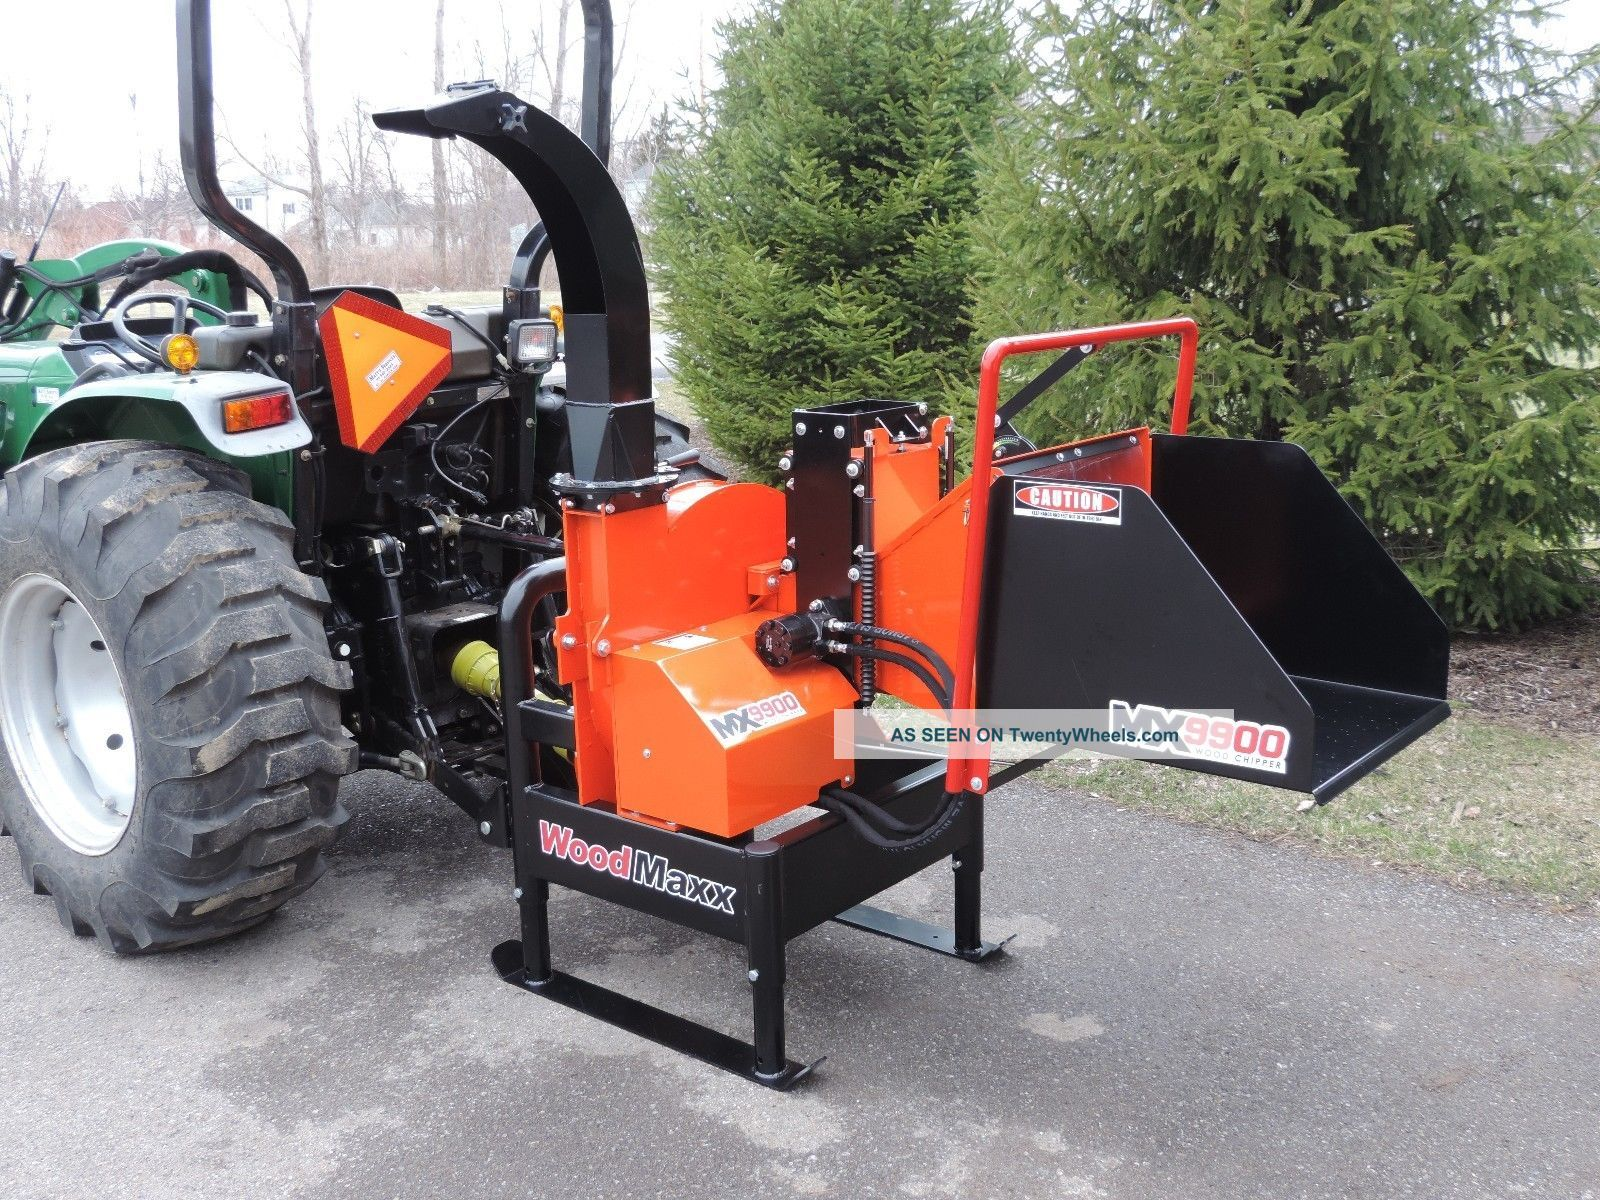 Woodmaxx Mx - 9900 Pto Wood Chipper W/hydro - Static In - Feed Wood Chippers & Stump Grinders photo